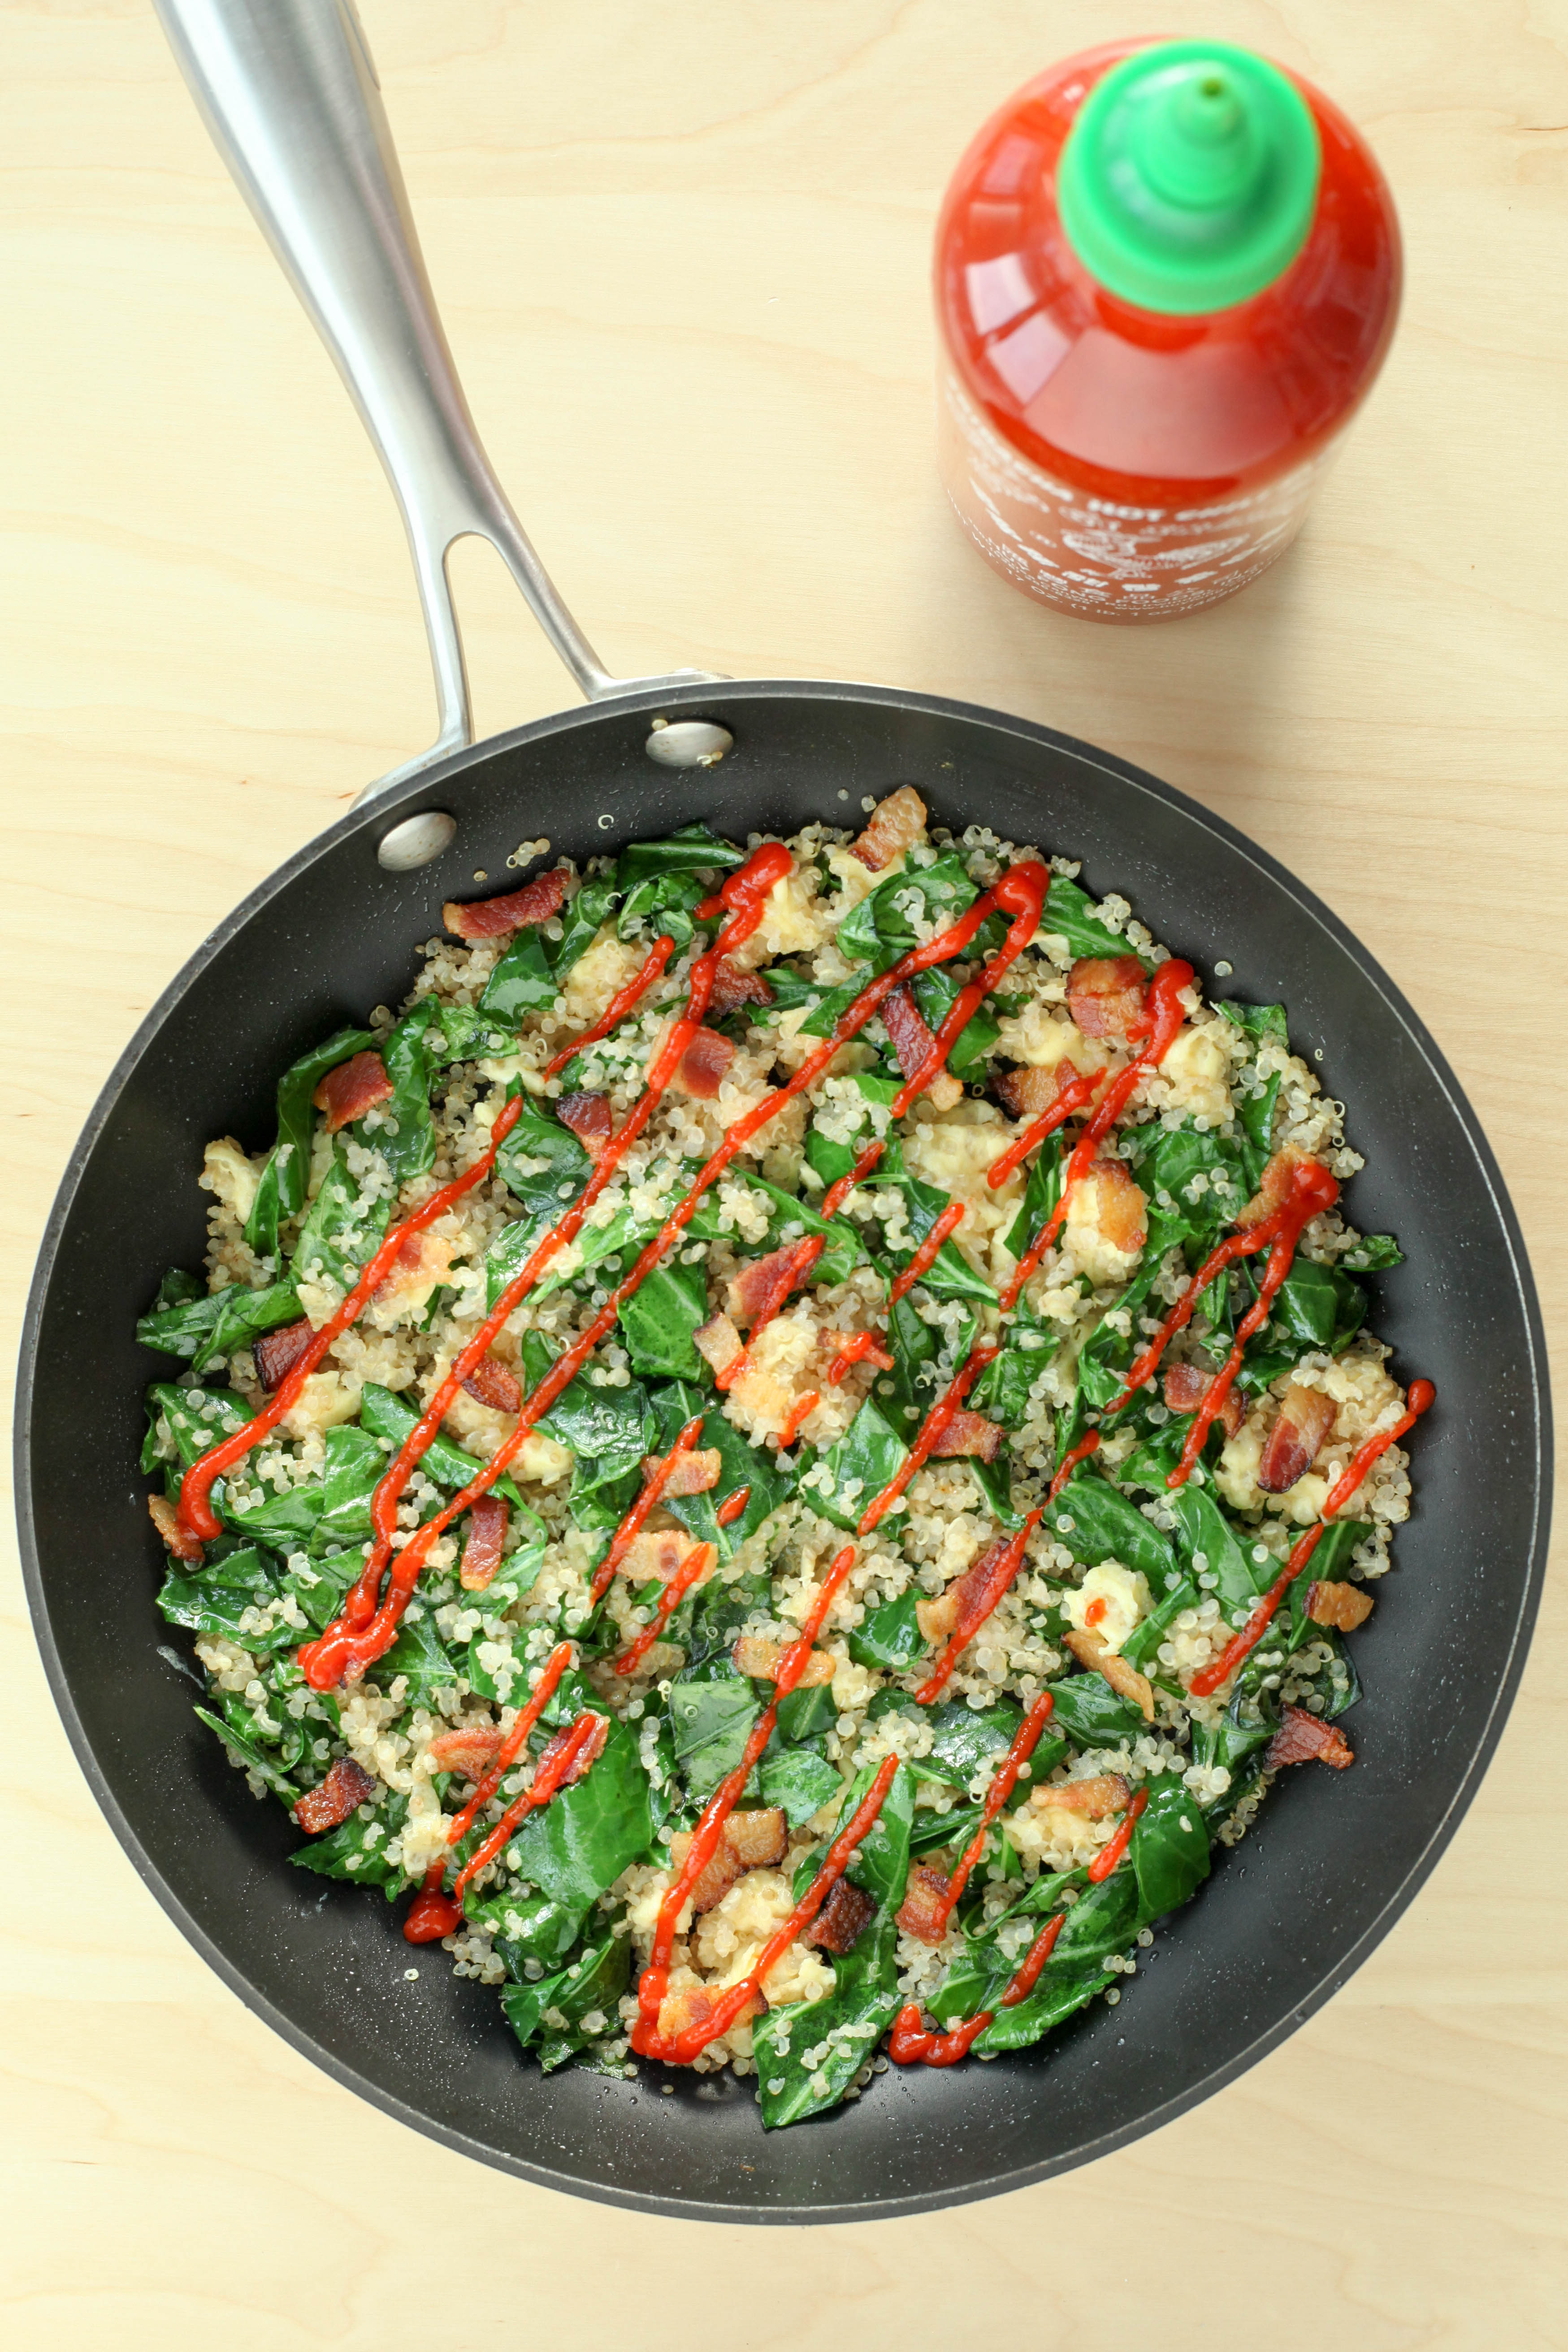 Breakfast Fried Quinoa With Collards, Bacon, and Sriracha (gluten-free) | A Modest Feast | @amodestfeast